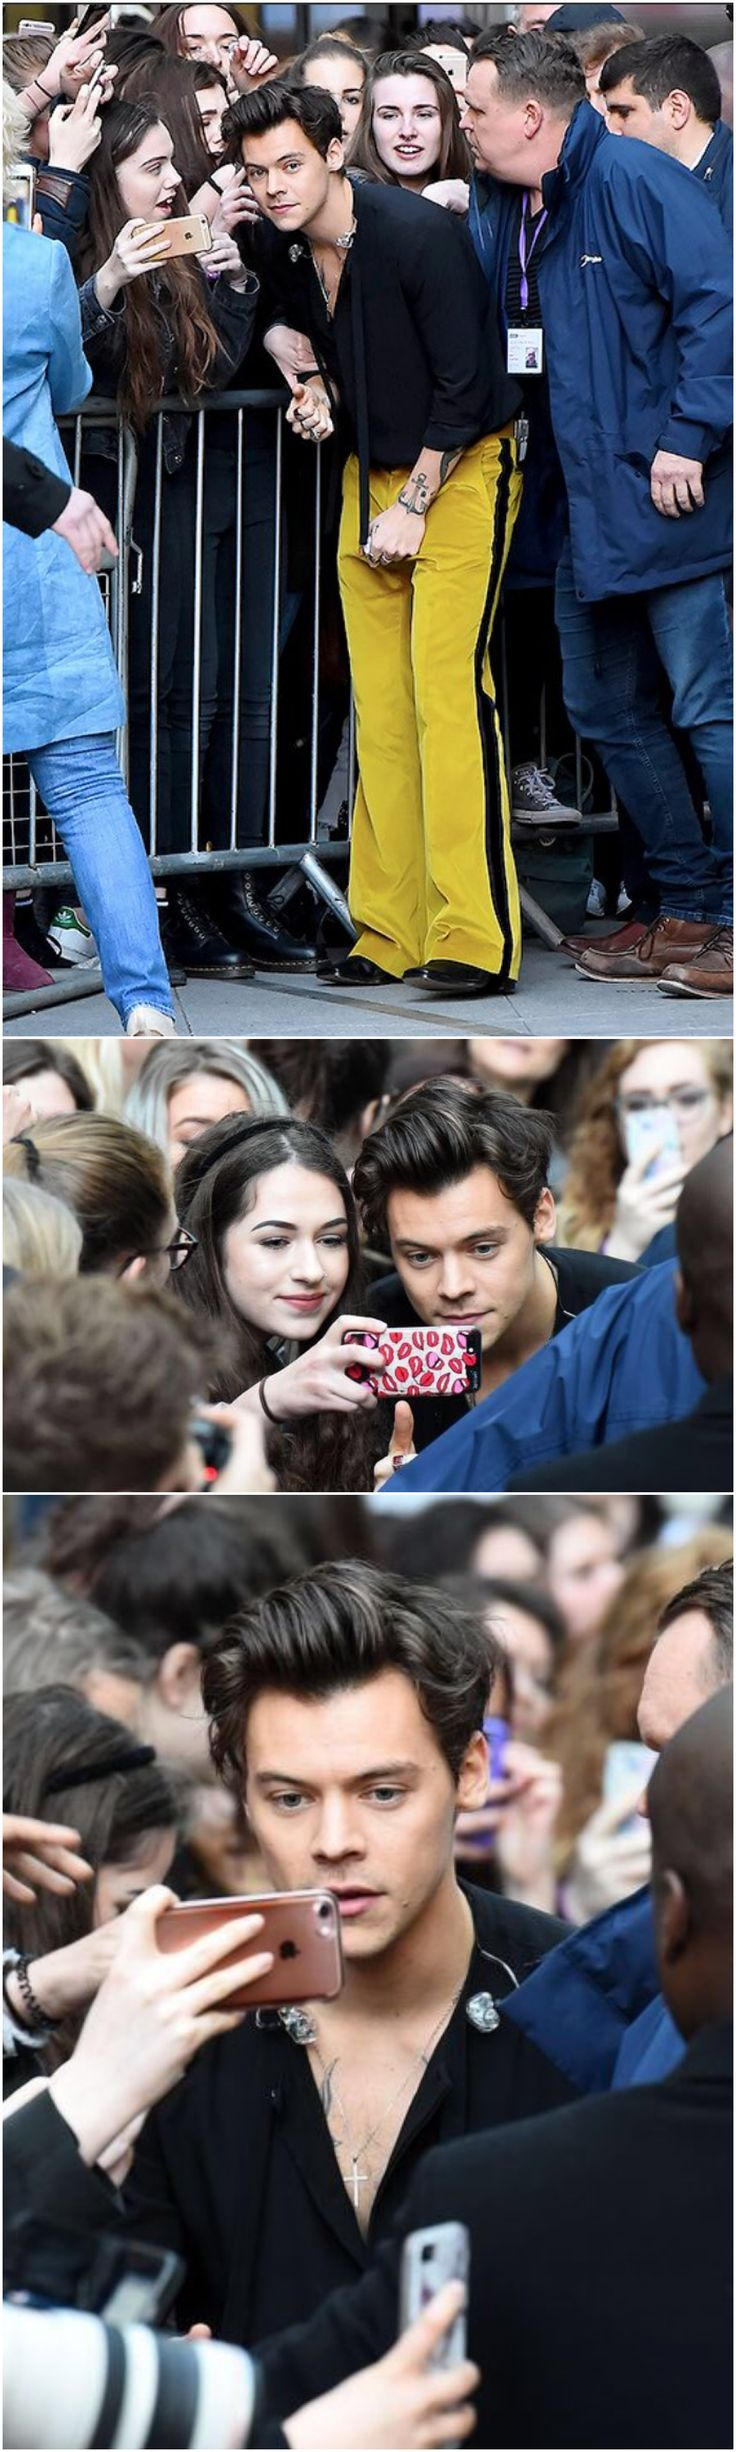 NEW | Harry meeting fans at The One Show today 13 May 2017. Follow rickysturn/harry-styles